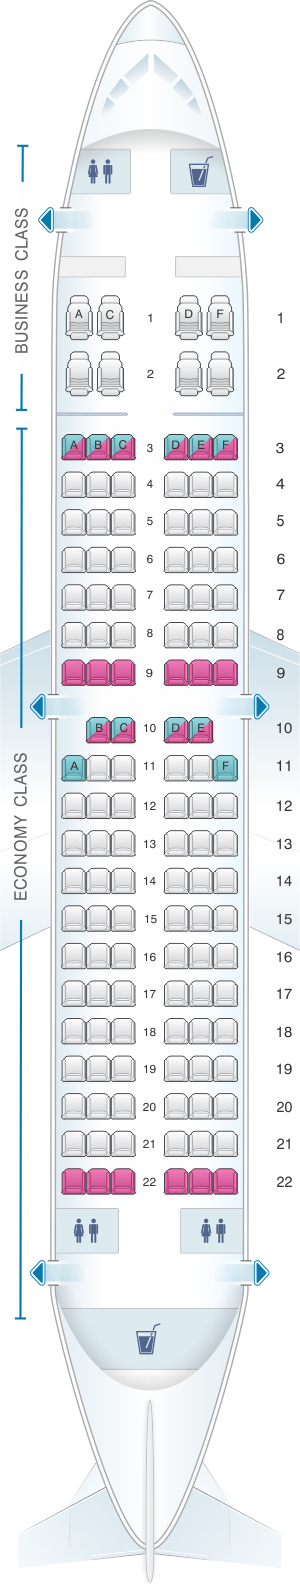 Seat map for Air Vallee Boeing B737 300